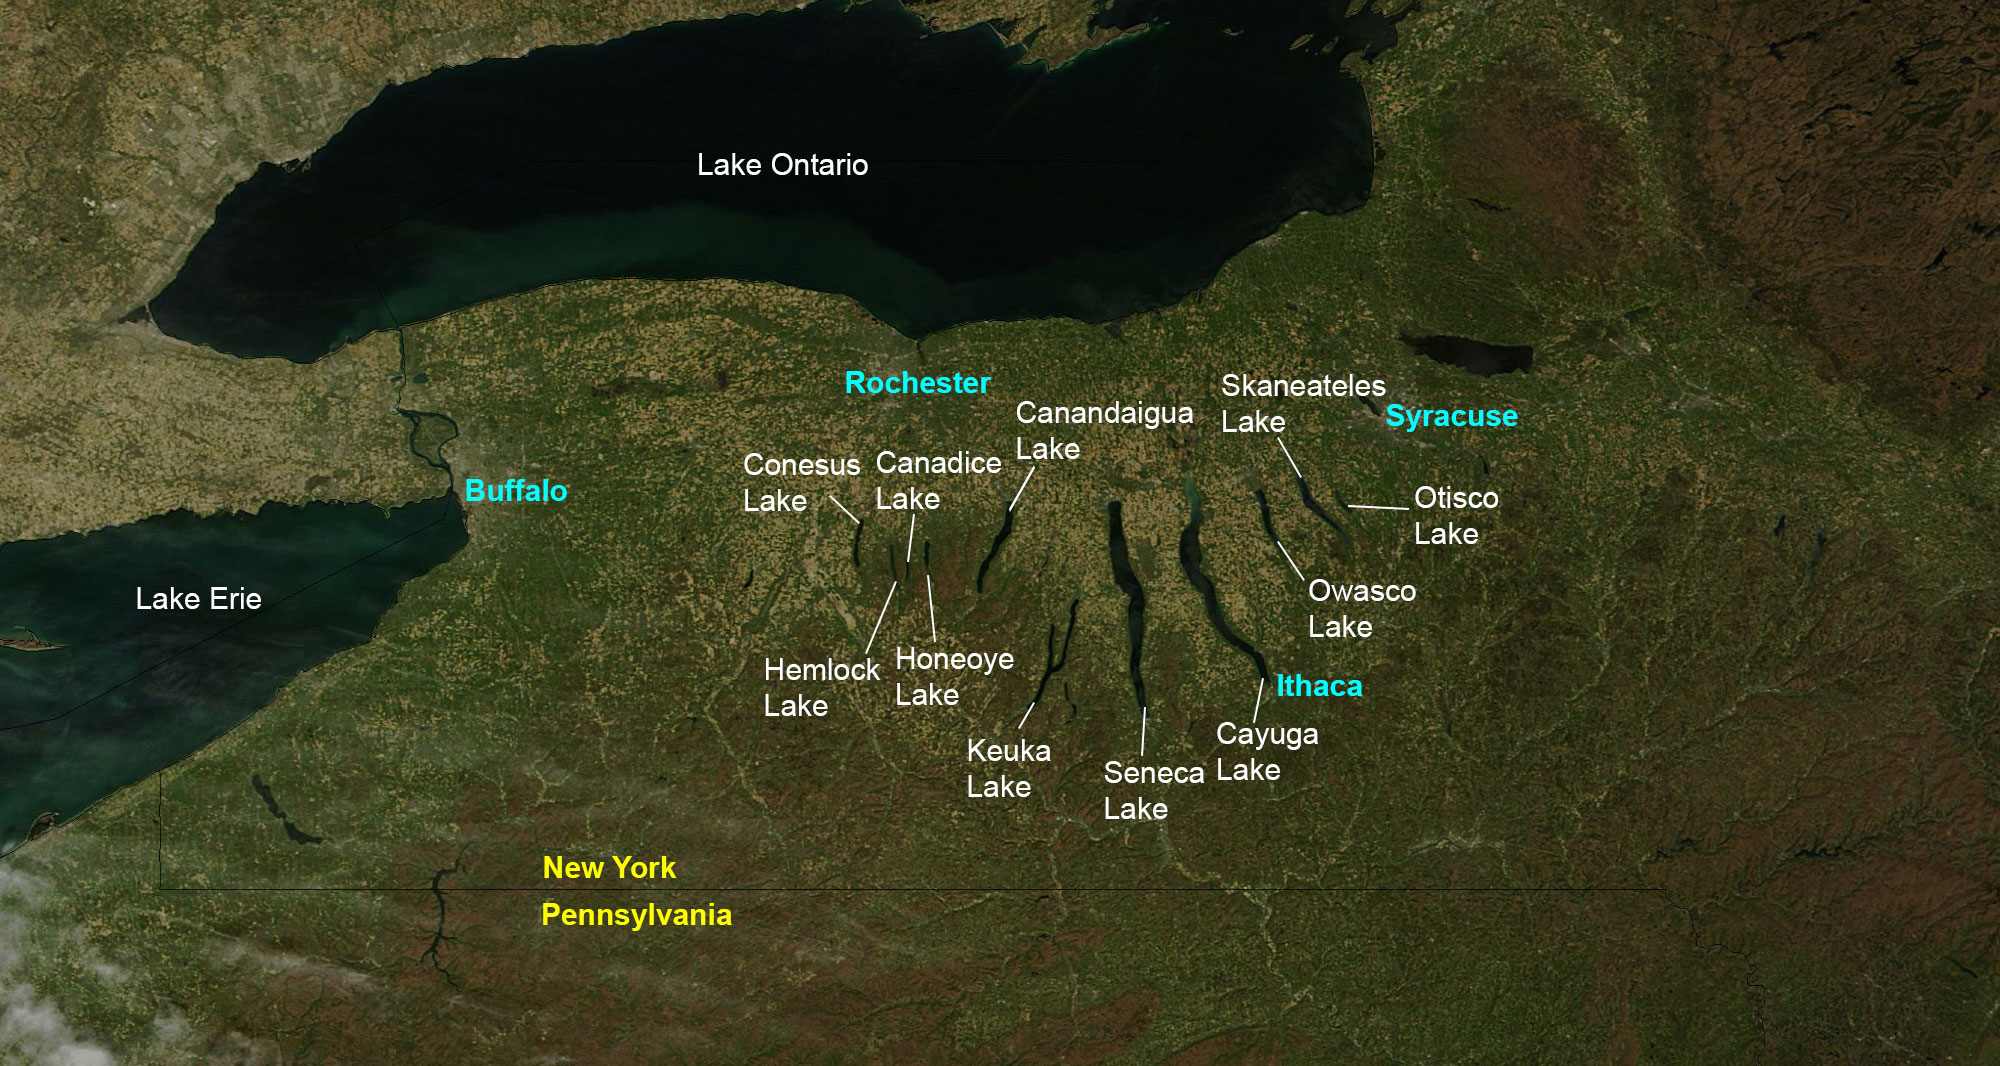 Satellite image of the Finger Lakes region, with each individual lake identified.